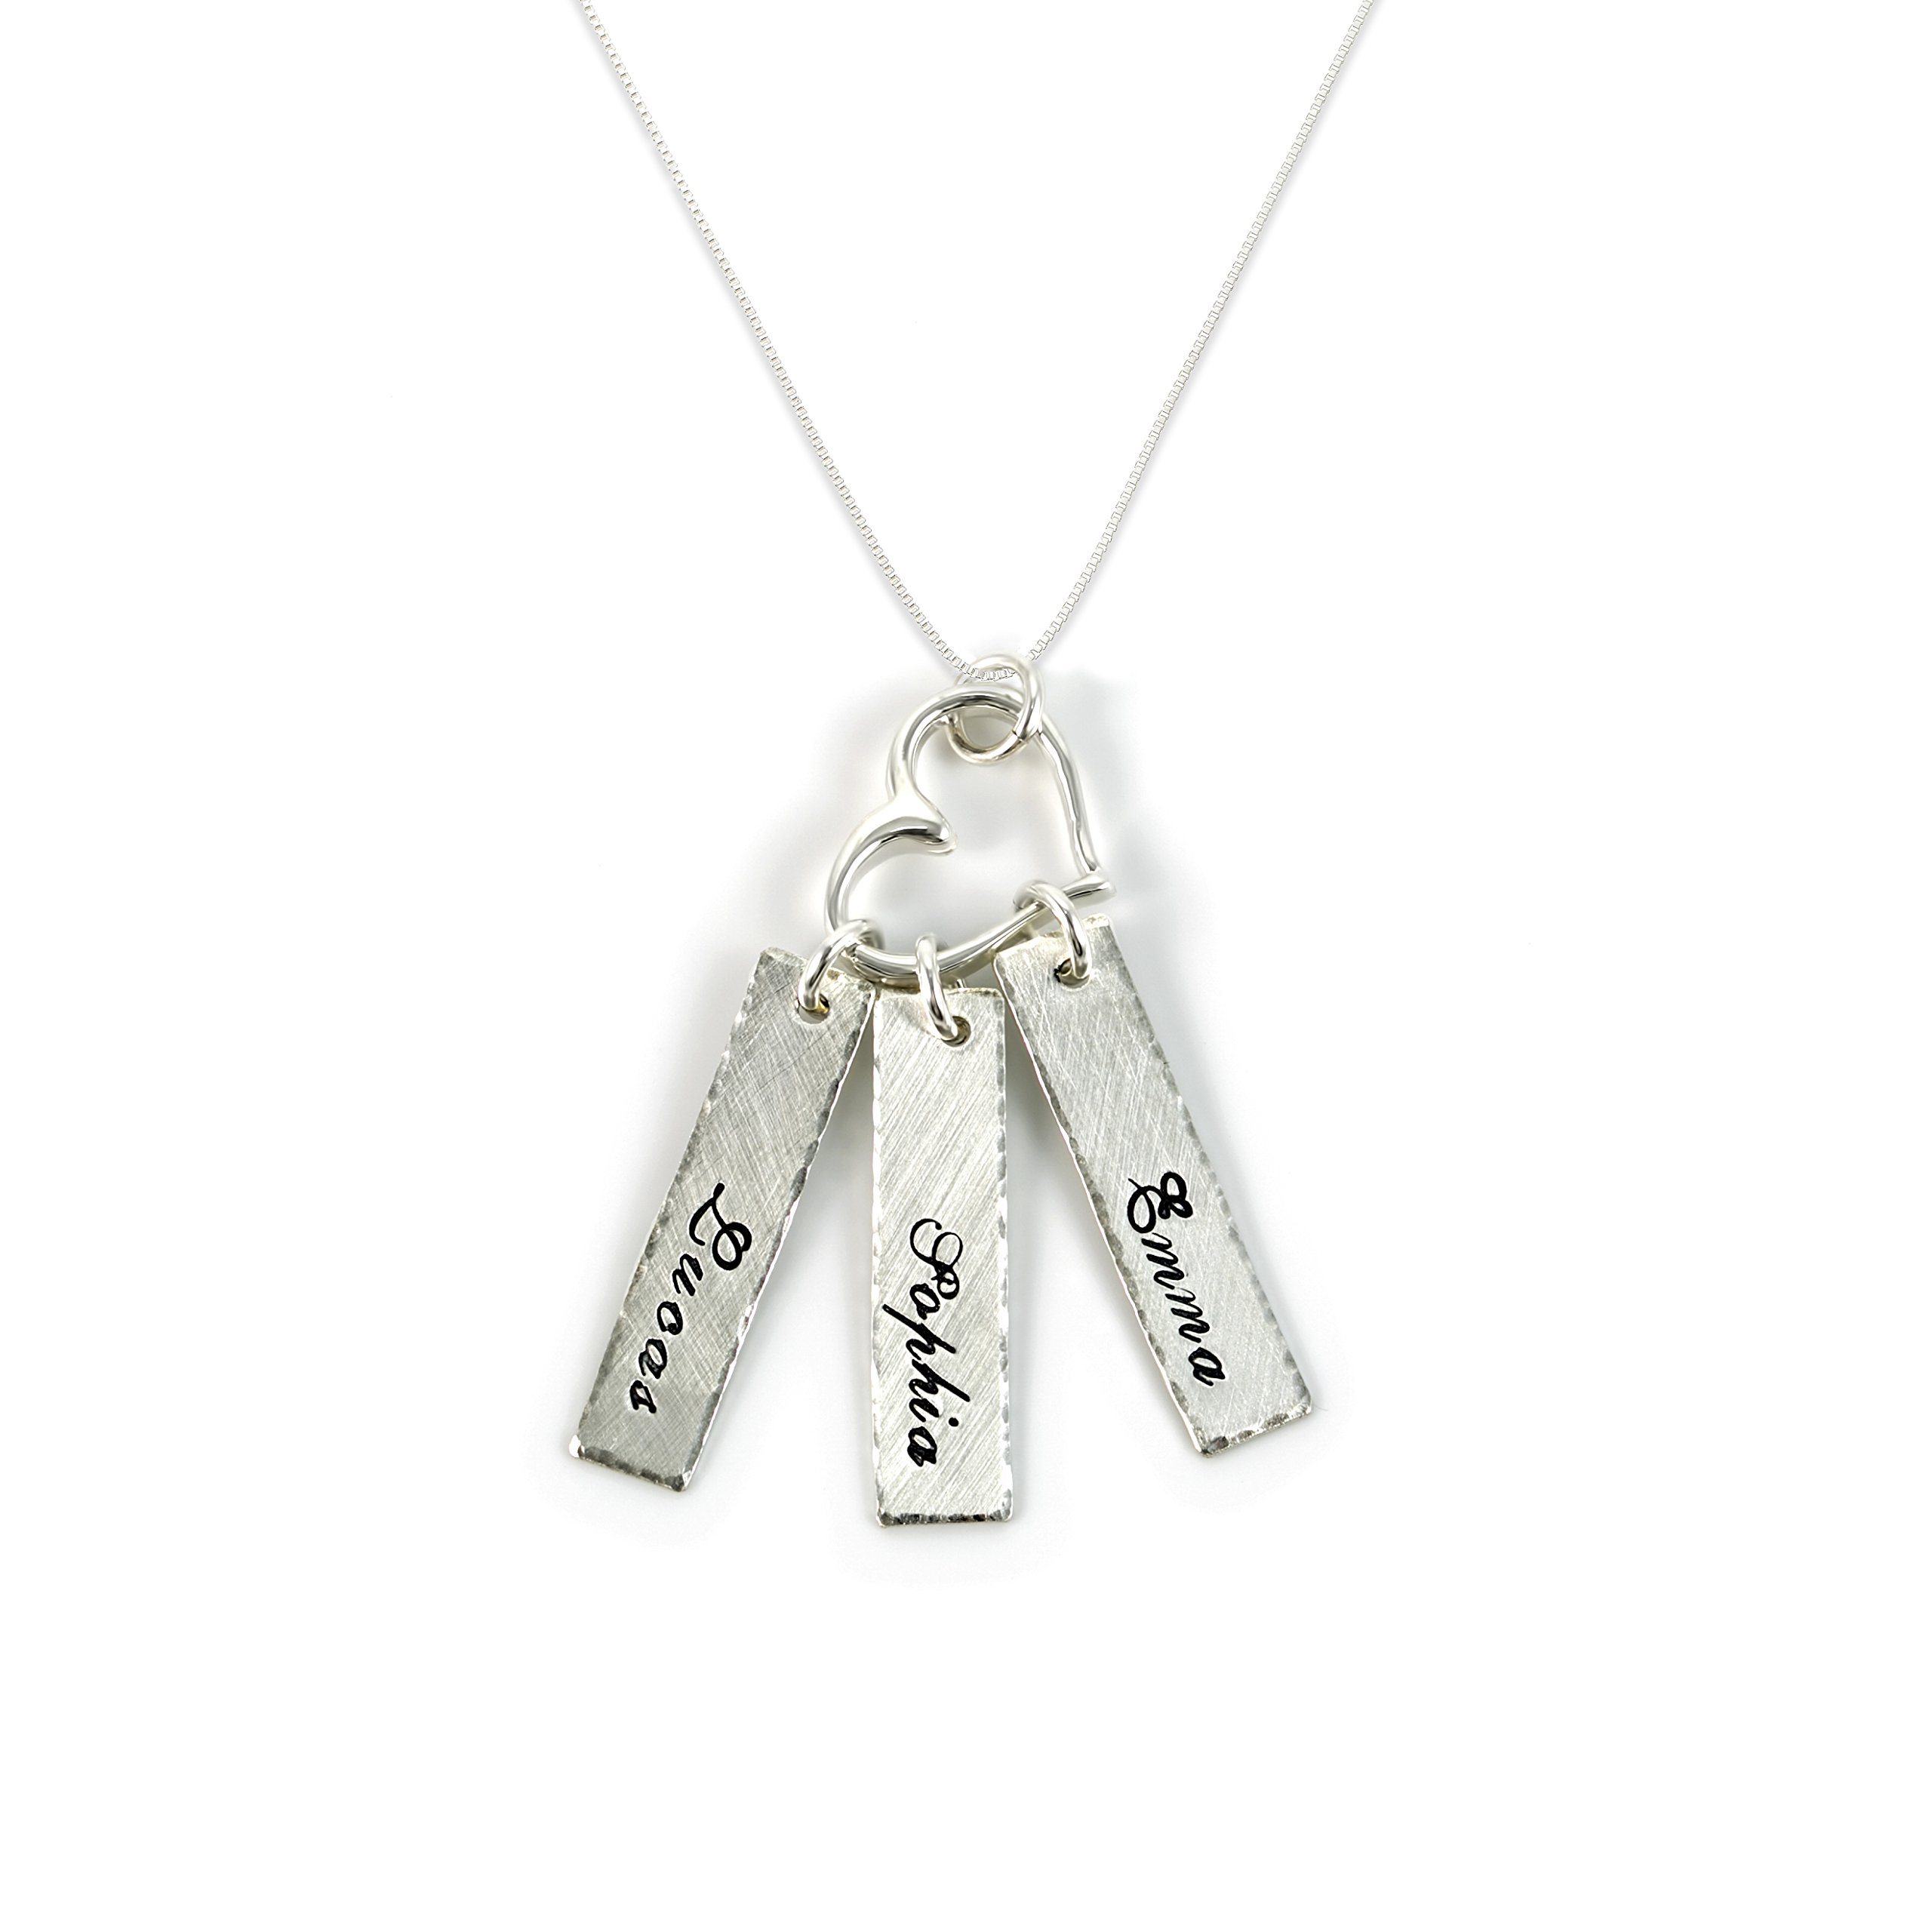 AJ's Collection Triple Bar Sterling Silver Personalized Necklace with Heart Charm. Includes 3 Customizable Charms and Your Choice of Sterling Silver Chain. Gifts for Her, Mom, Wife